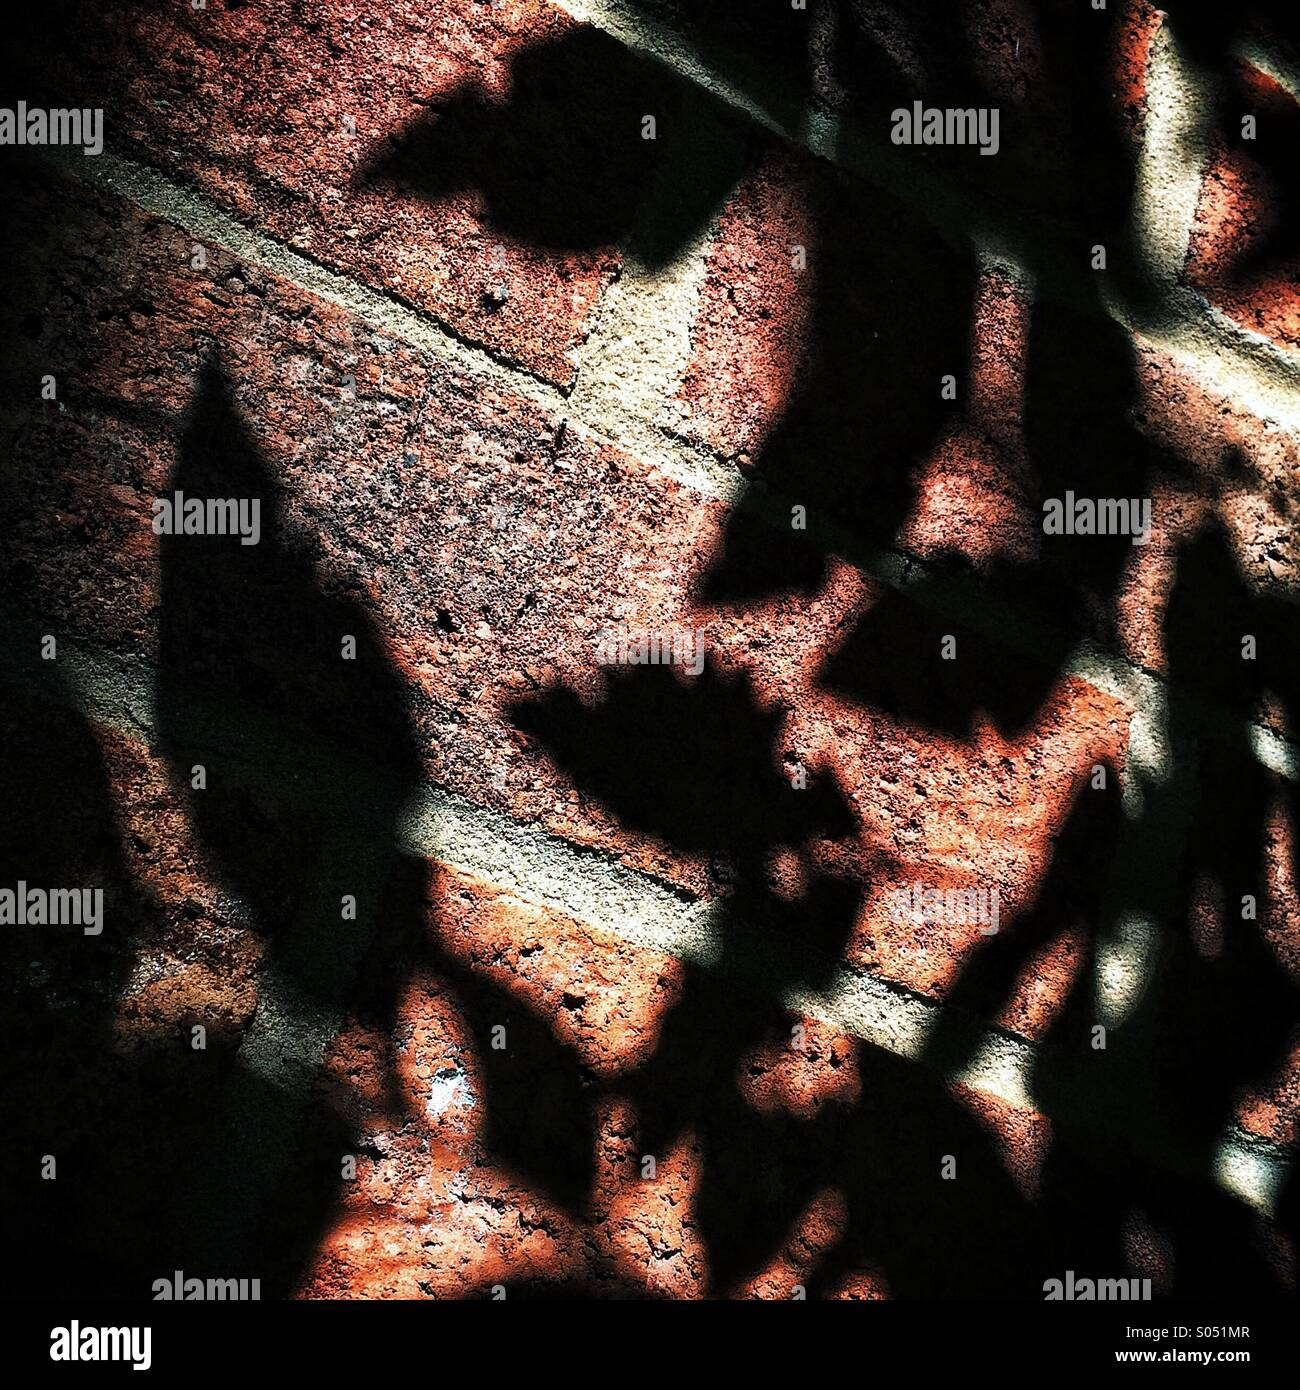 Shadow of leaves on brick wall - Stock Image